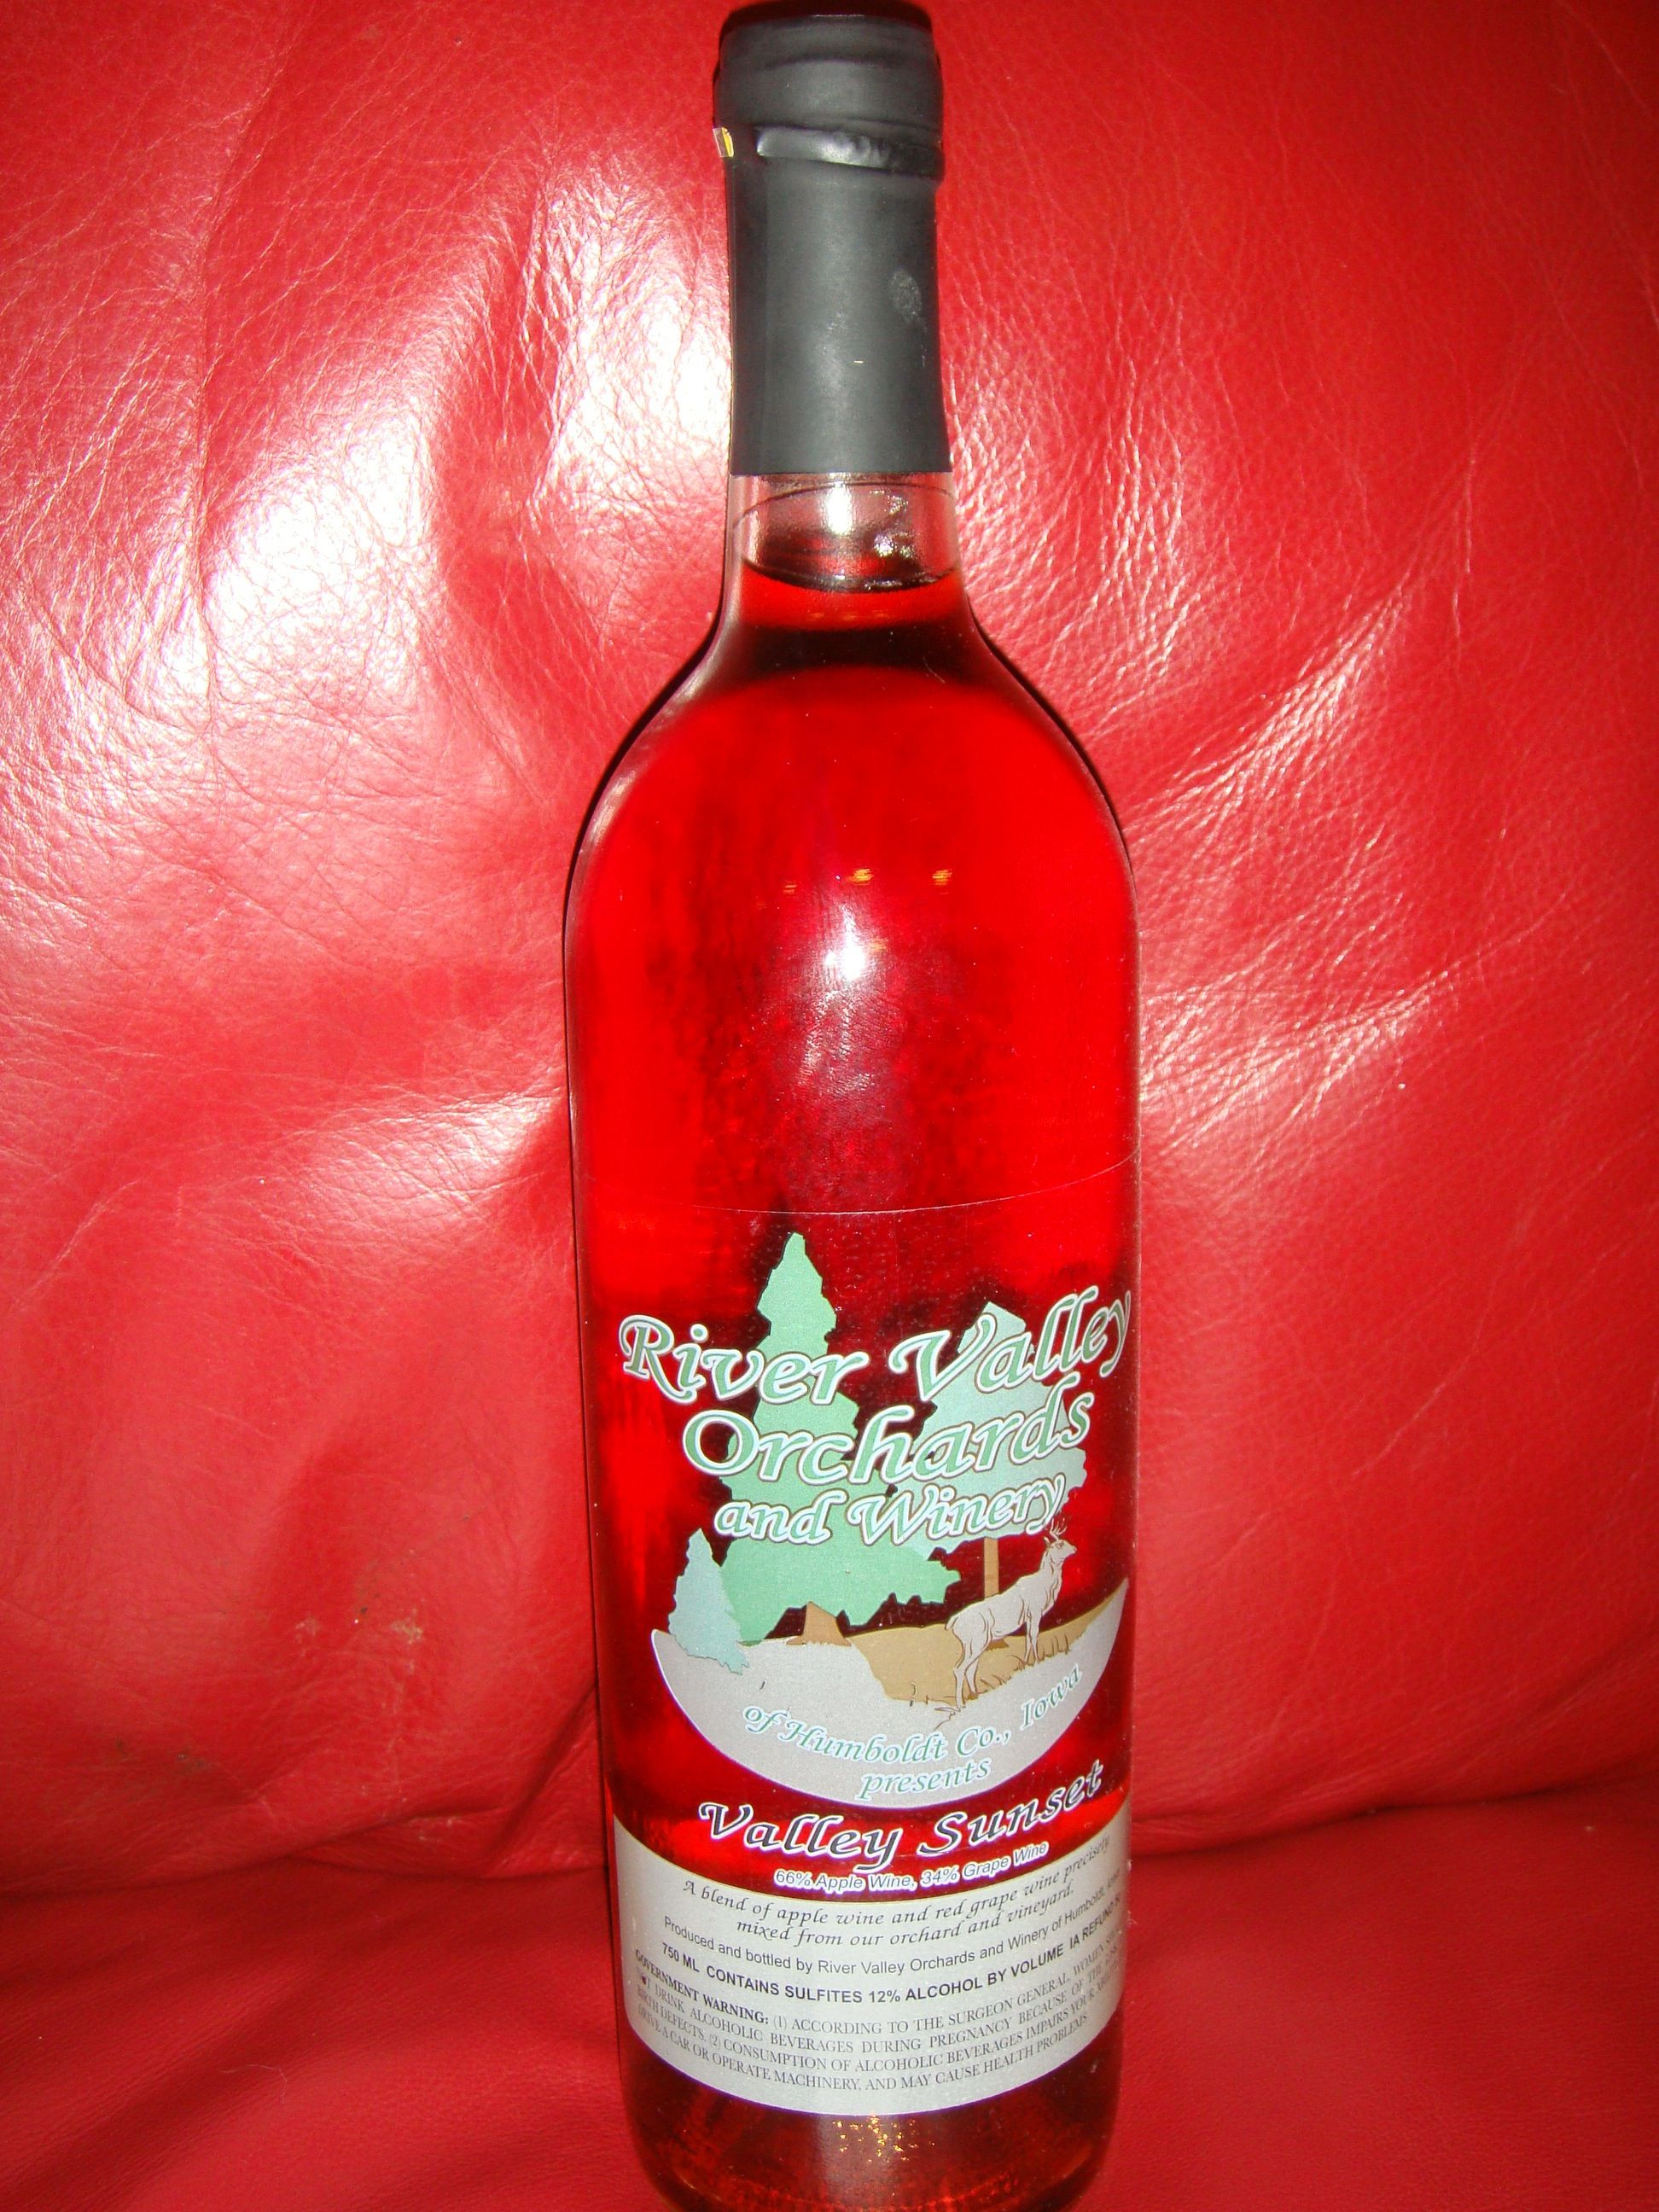 Valley Sunset Wine By River Valley Orchards And Winery In Humboldt Iowa Wine Bottle Rose Wine Bottle Distillery